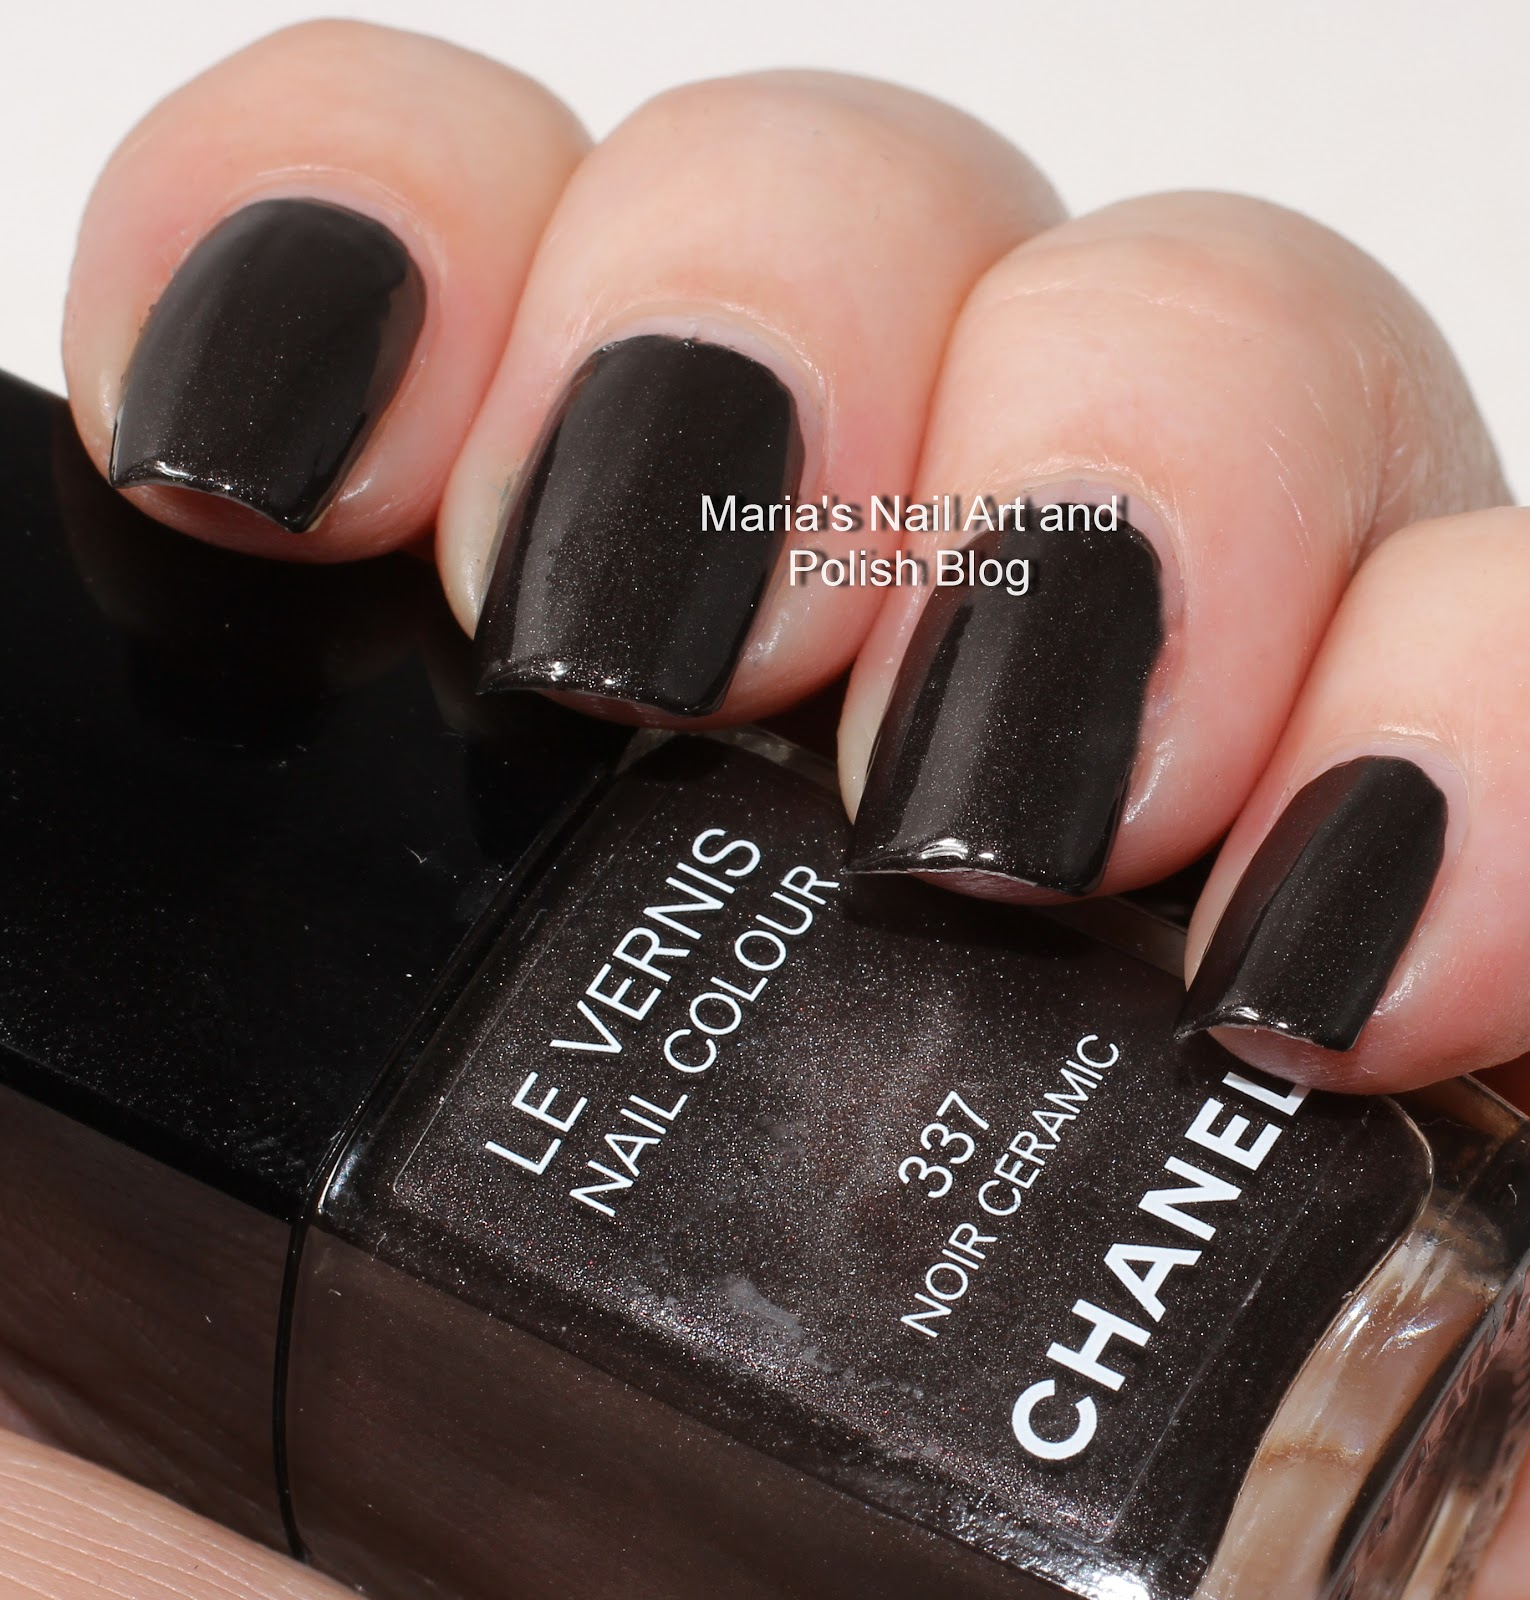 marias nail art and polish blog chanel noir ceramic 337 spring 2007 swatches. Black Bedroom Furniture Sets. Home Design Ideas